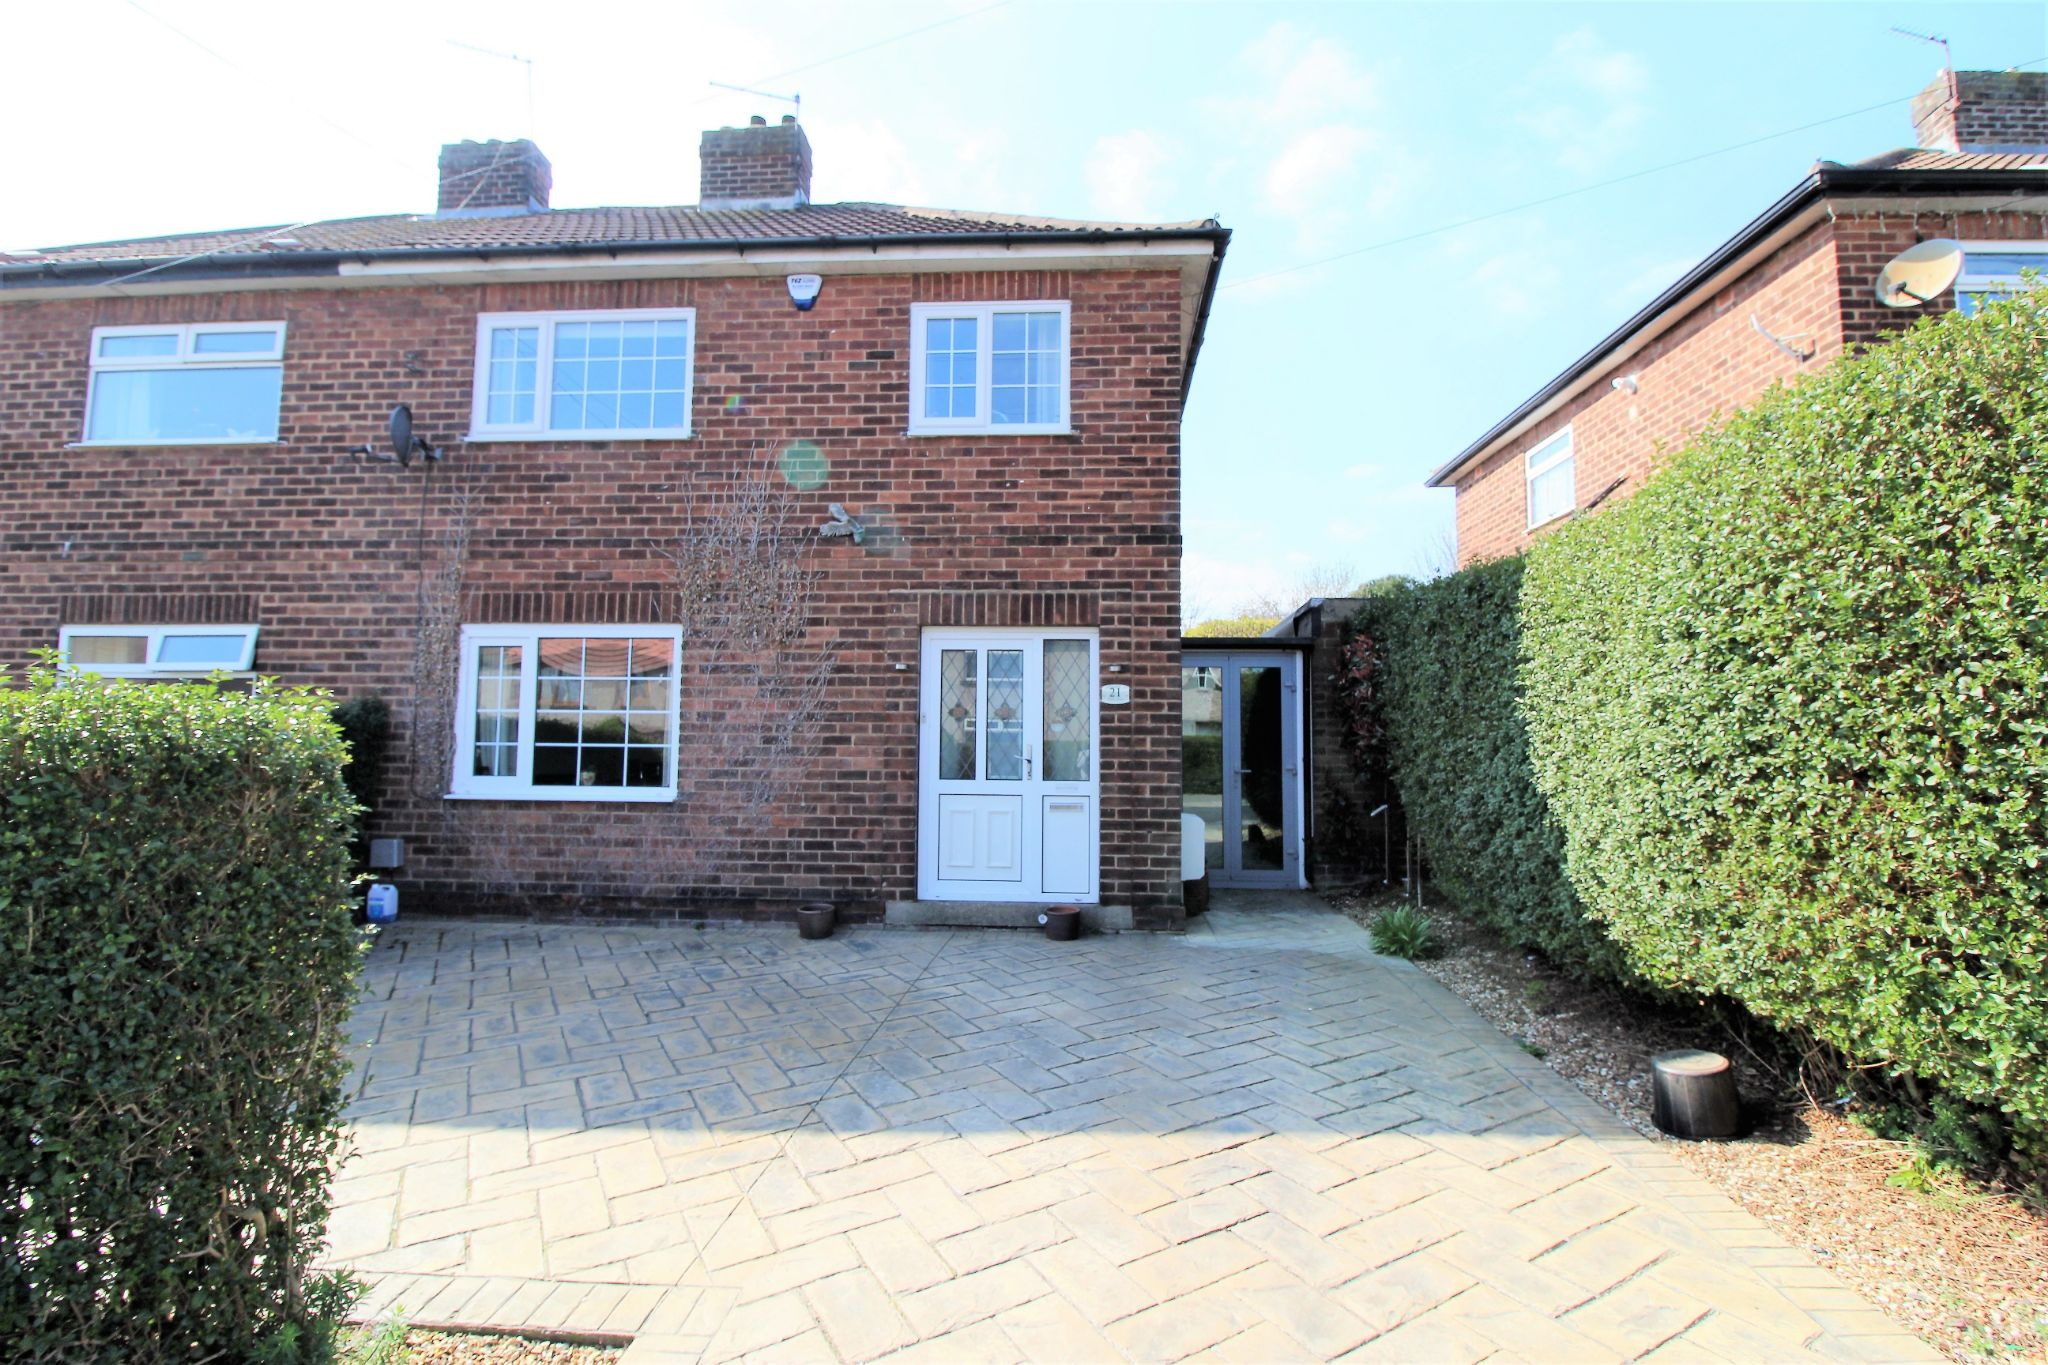 3 bedroom semi-detached house SSTC in Halifax - Front of the property